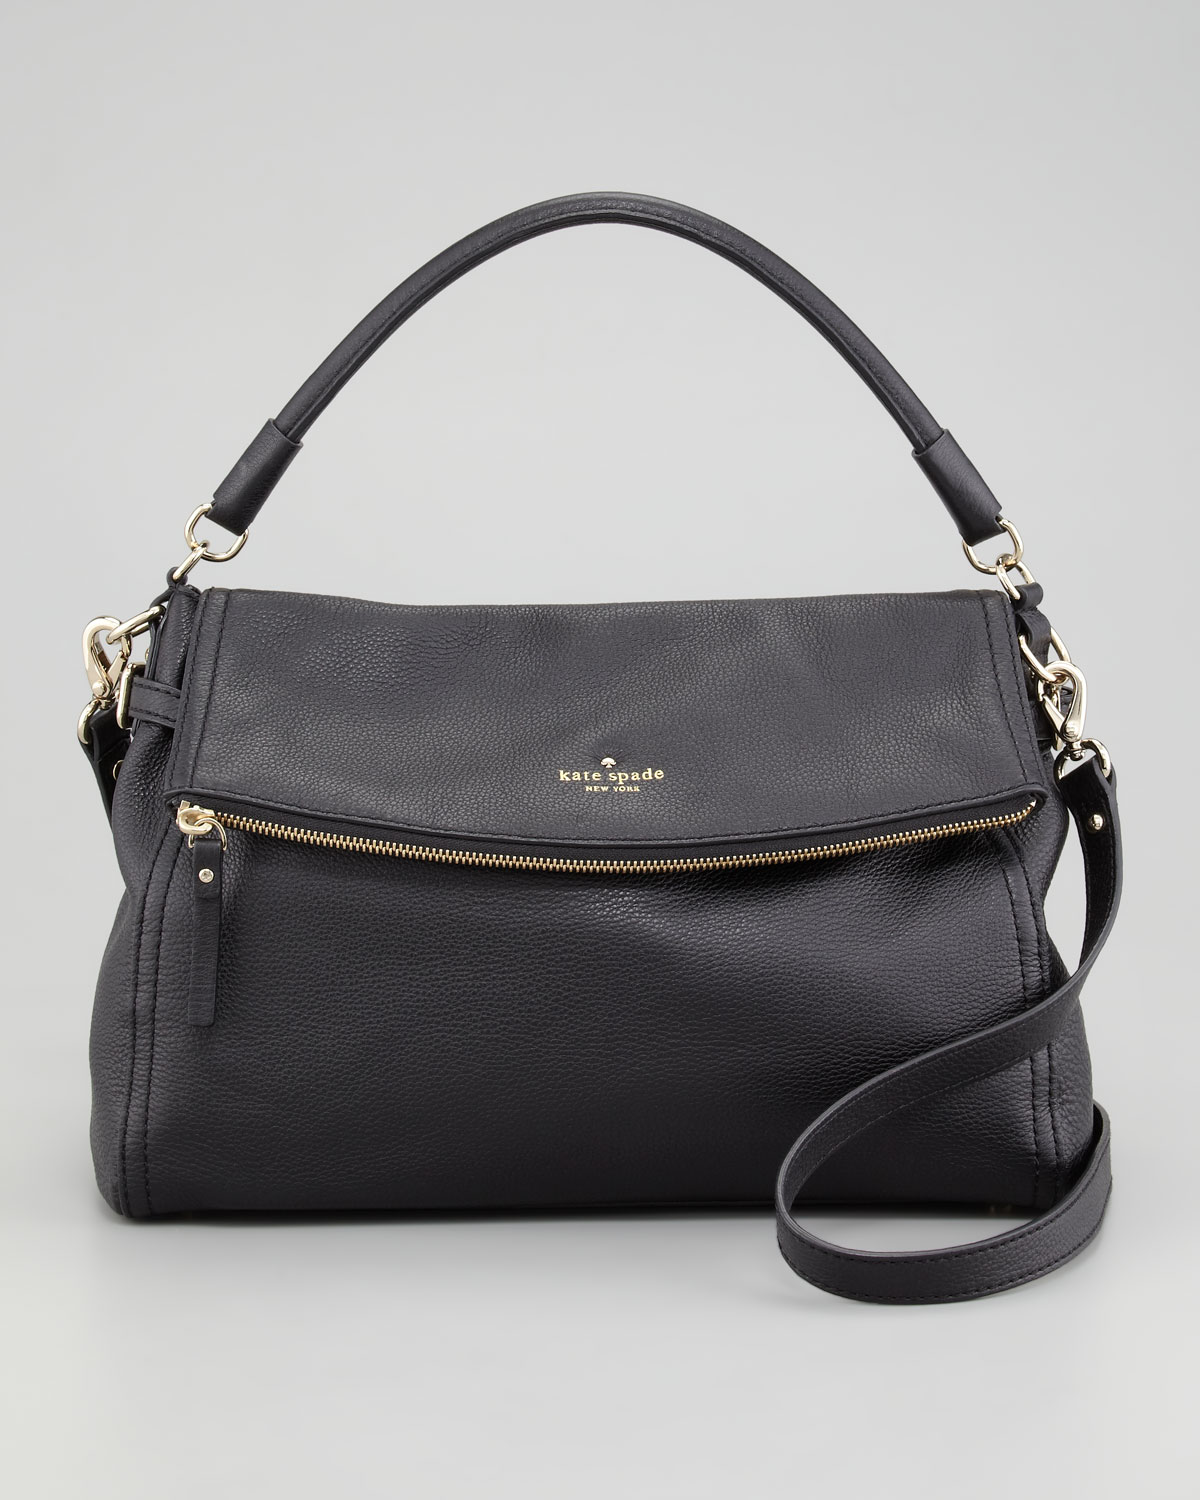 Shop for Kate Spade Bags, Purses, Crossbody, Totes and More styles!% Original Kate Spade Handbags with High Quality Online Sale up to 70% Discount. New Design Kate Spade Sale Online. Enjoy Free shipping with $99 purchase.